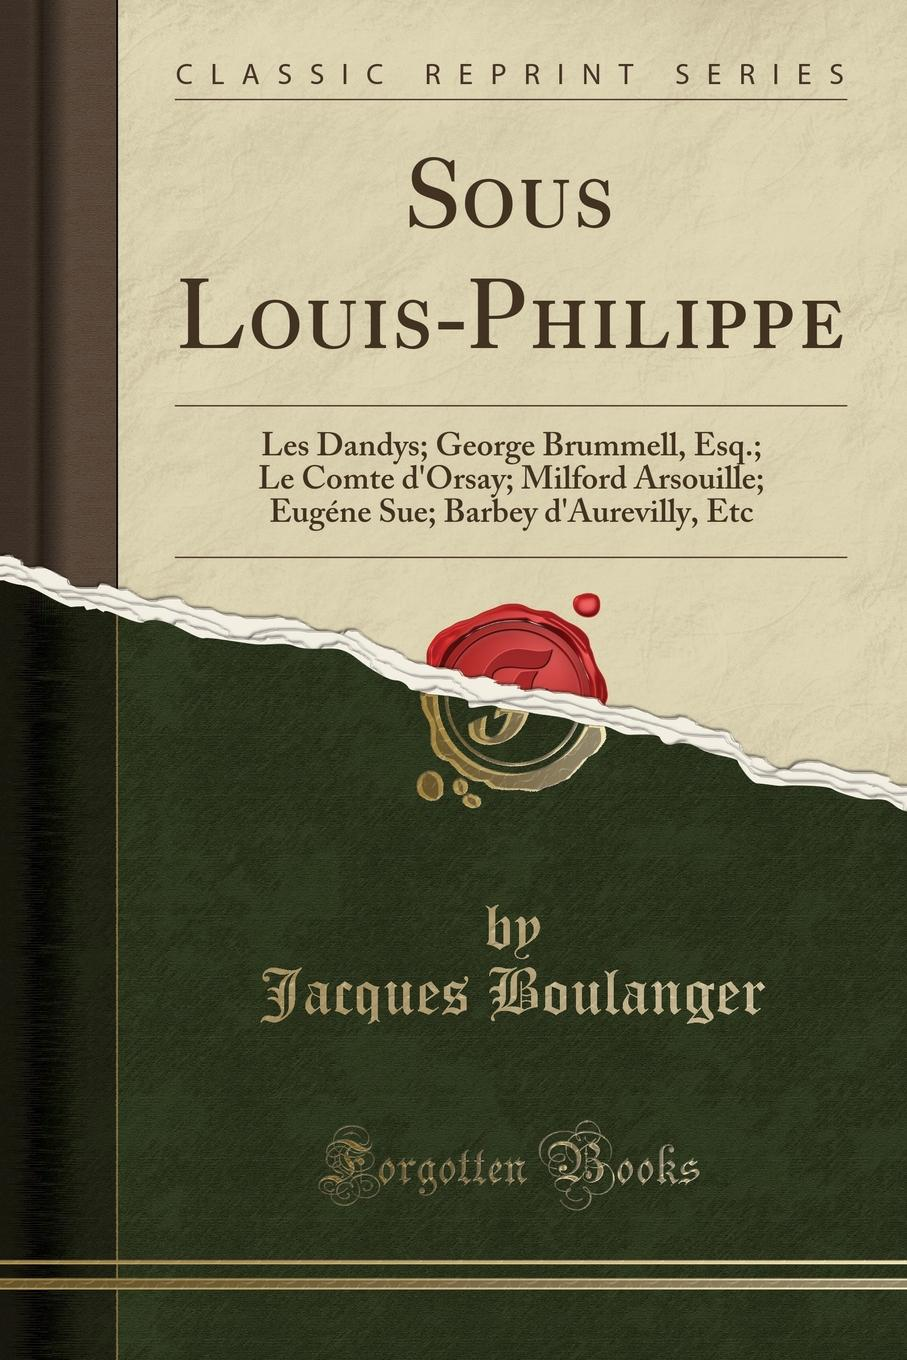 Jacques Boulanger Sous Louis-Philippe. Les Dandys; George Brummell, Esq.; Le Comte d.Orsay; Milford Arsouille; Eugene Sue; Barbey d.Aurevilly, Etc (Classic Reprint) barbey d aurevilly jules le chevalier des touches